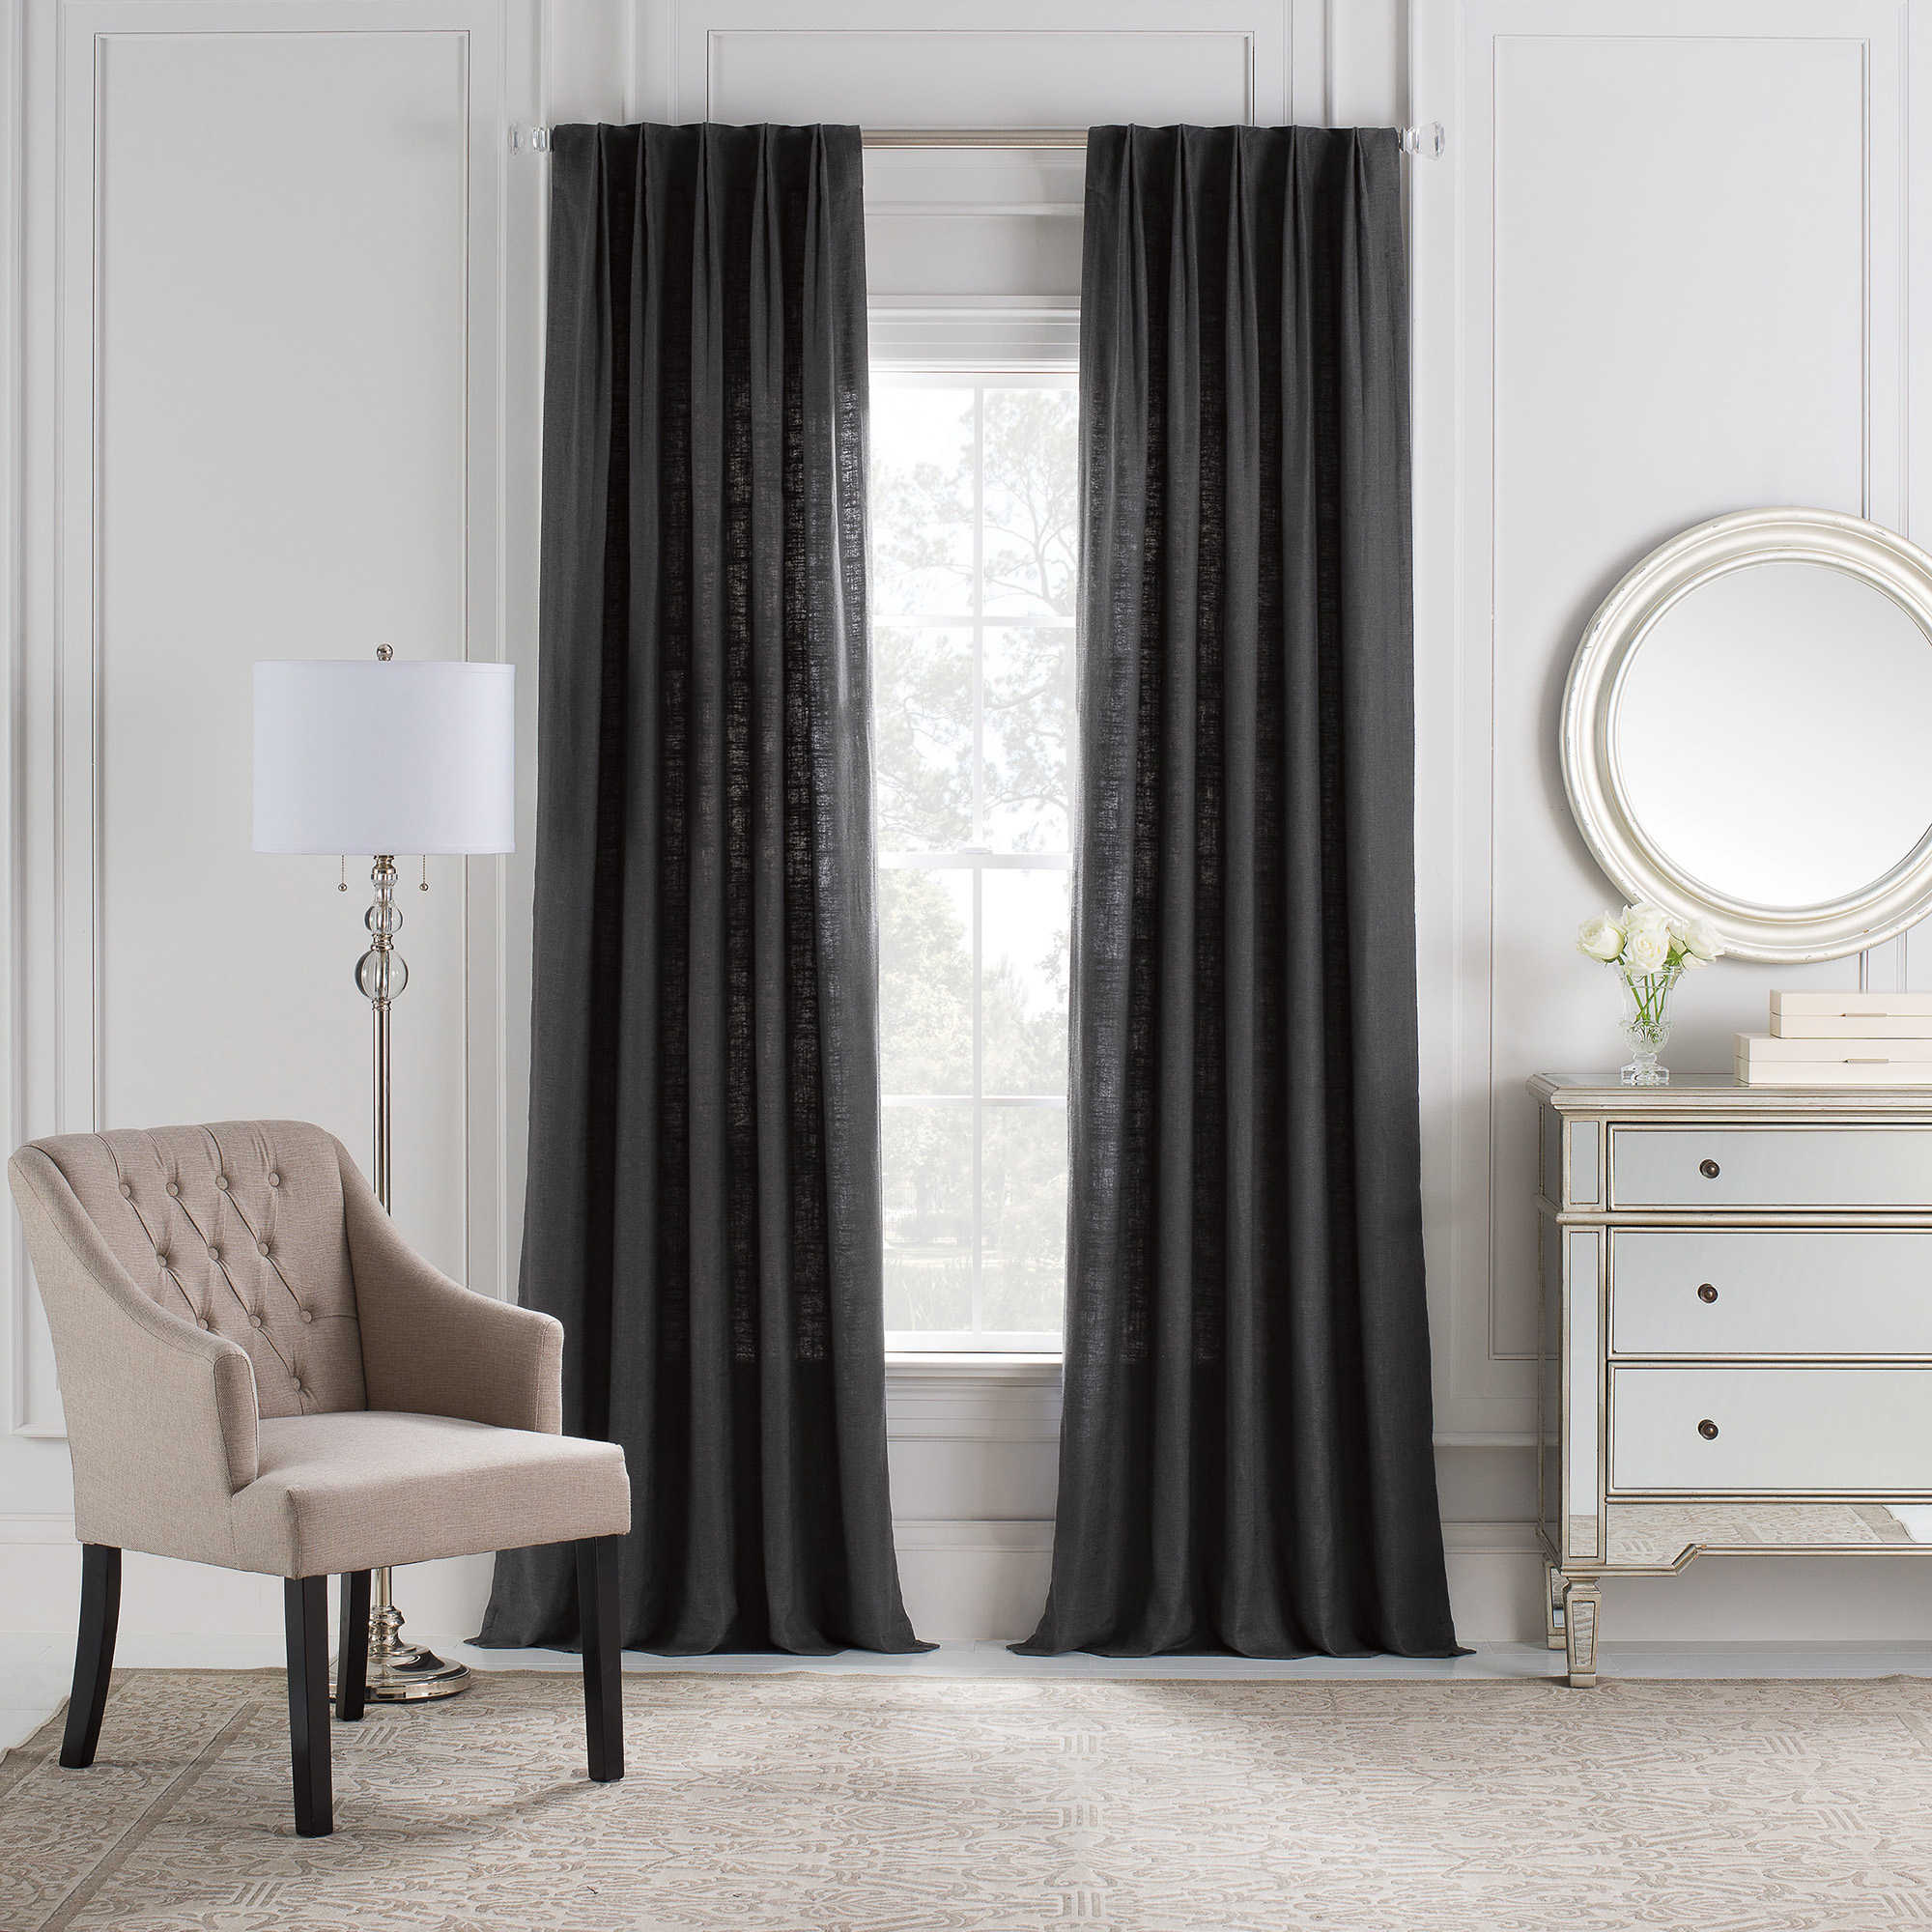 Home gt features amp occasions gt blackout curtains blackout luxury - Cambria Reg Malta Euro Pleat Back Tab Window Curtain Panel